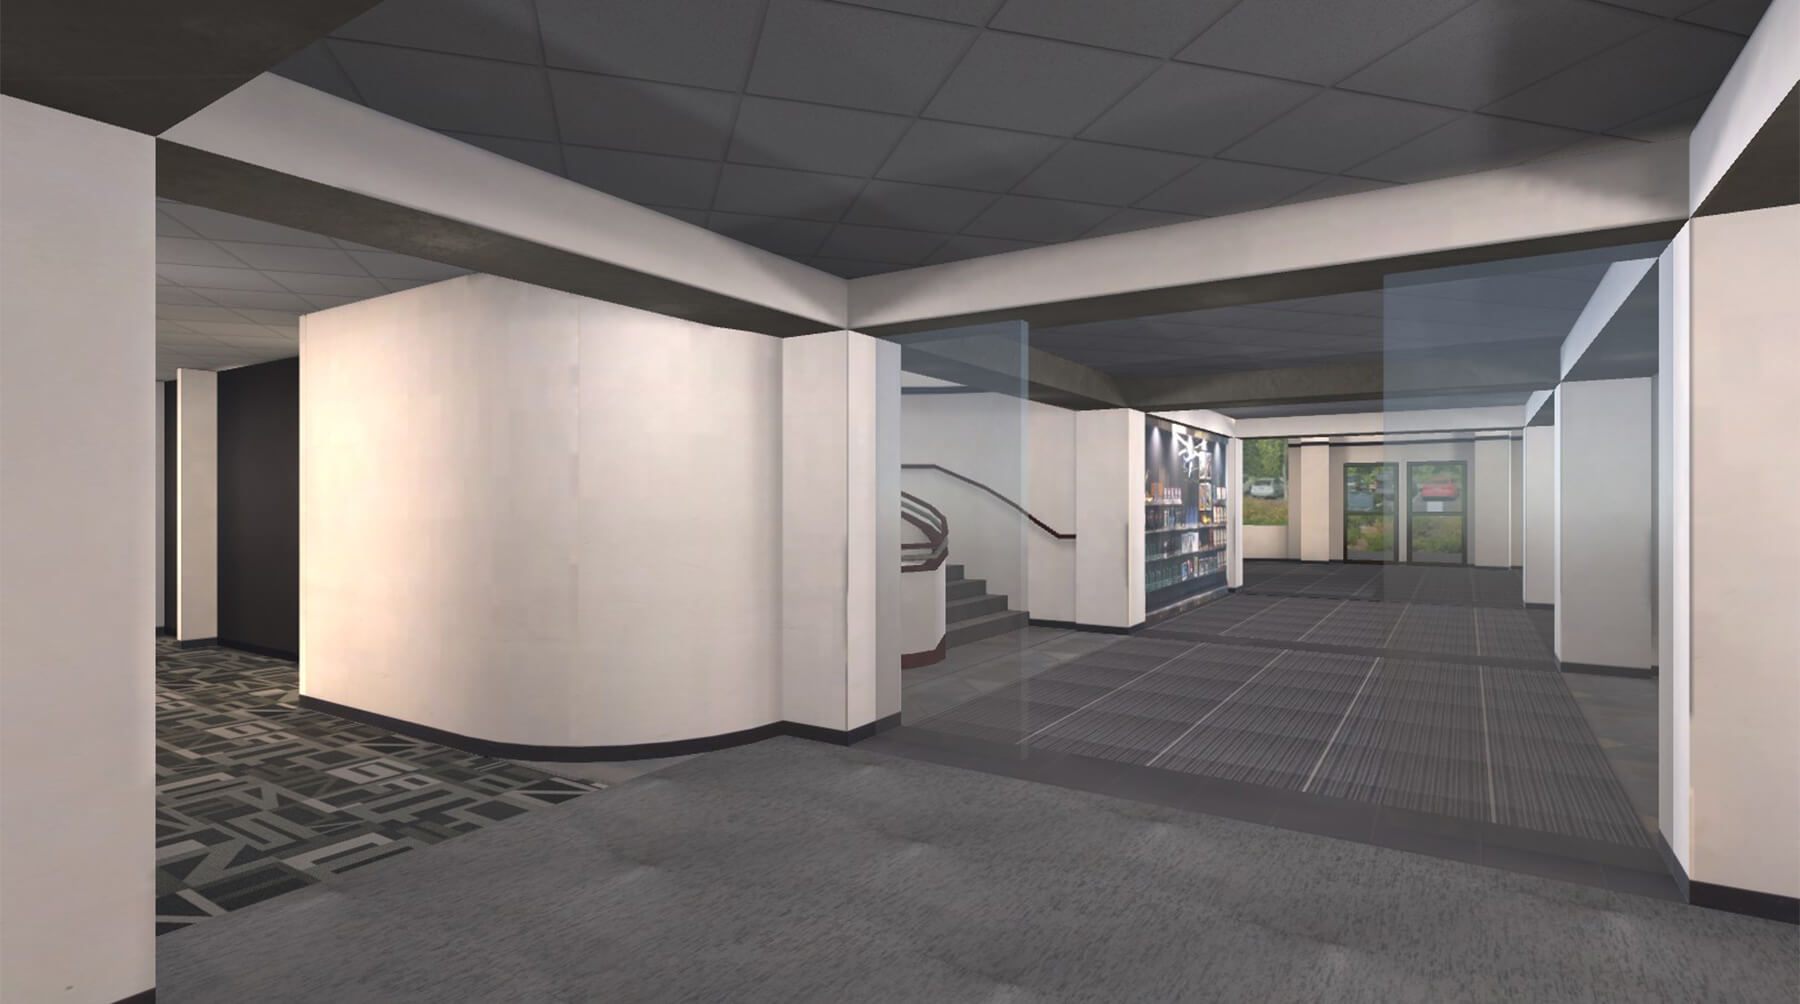 A 3D model of DigiPen's lobby, where AVAR attendees will be able to chat and network.